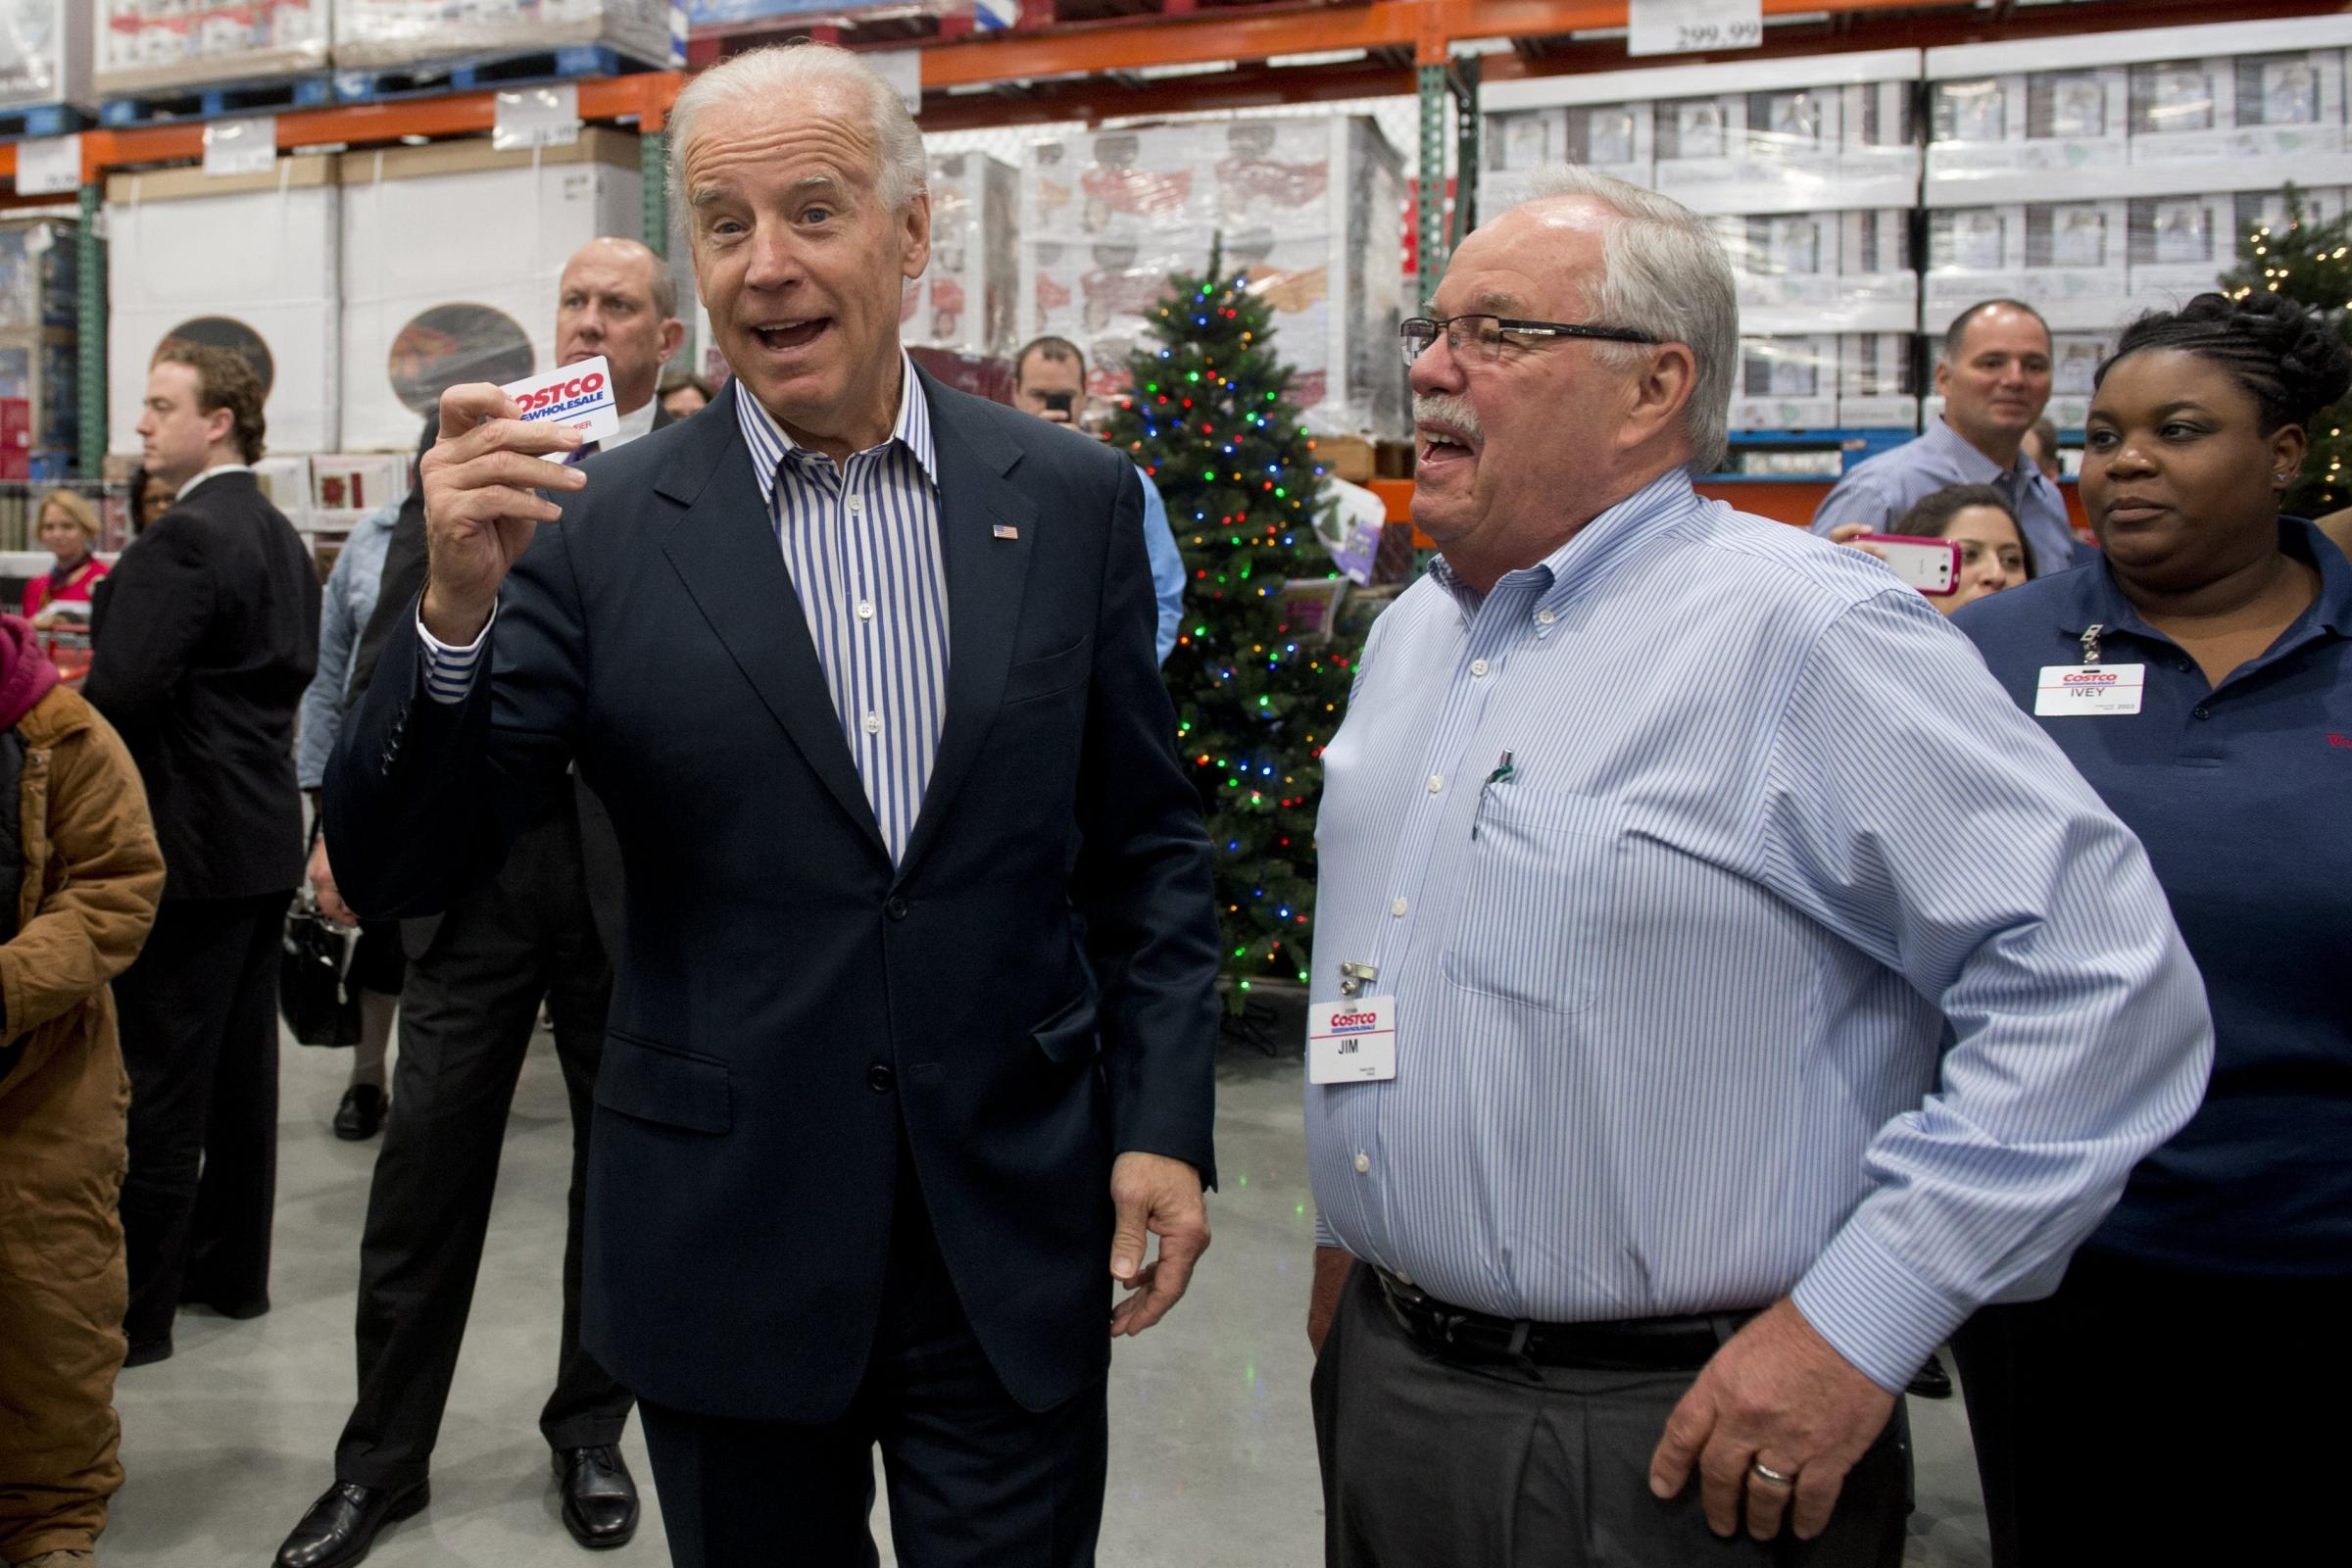 jim sinegal James d sinegal has been ceo of costco wholesale for 23 yearsmr sinegal has been with the company for 28 years and is its founder the 75 year old executive ranks 23 within retailing.